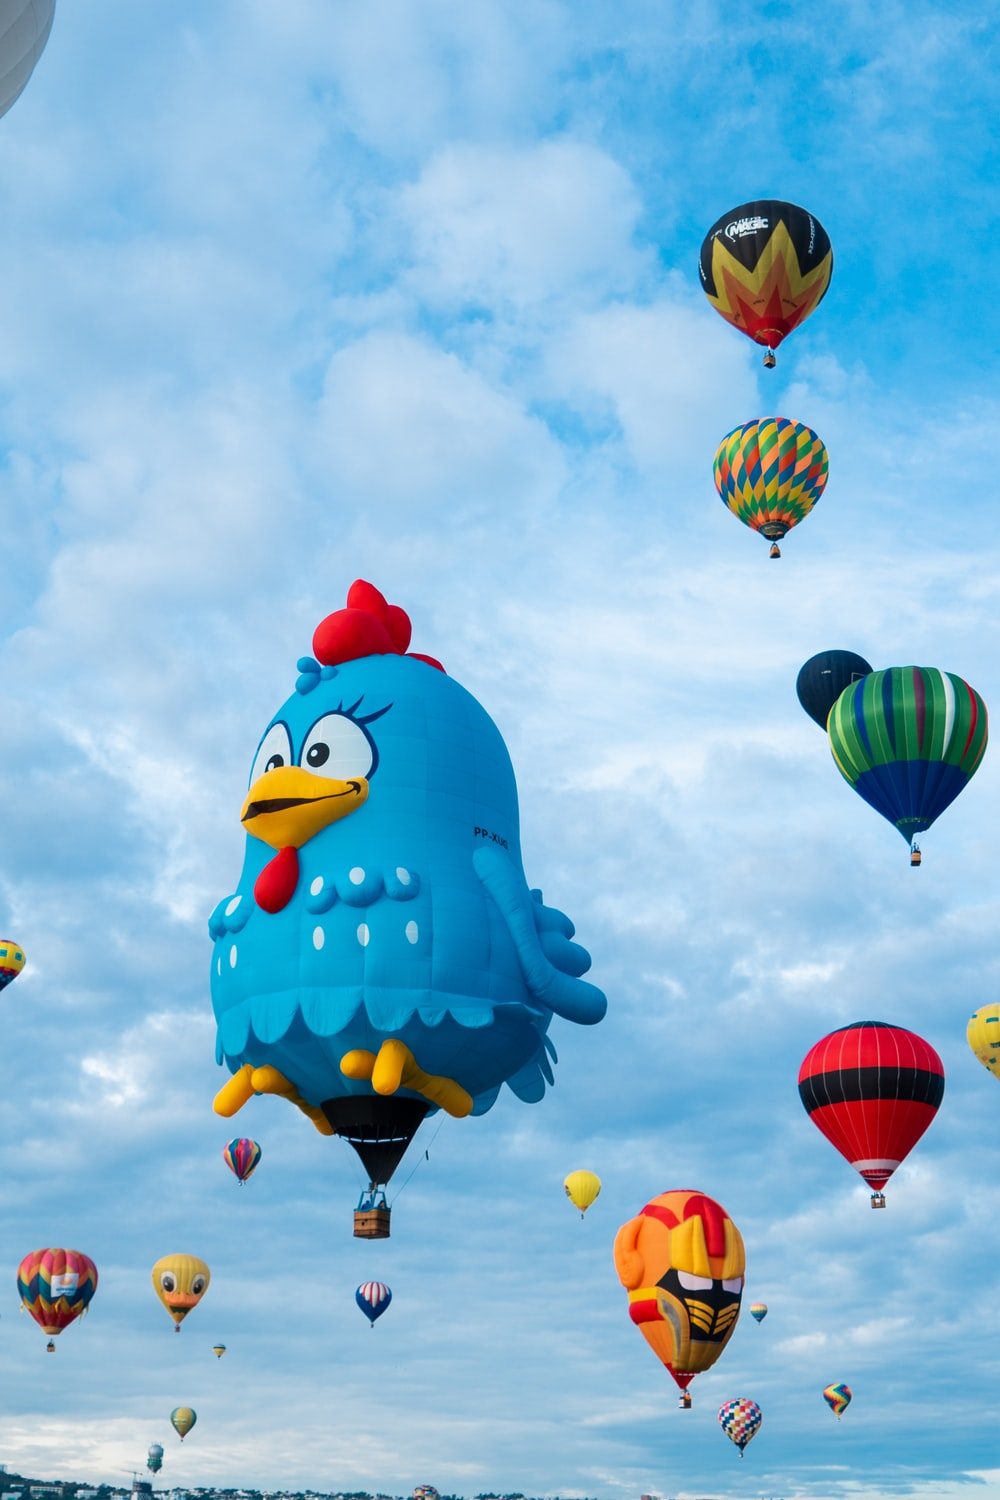 assorted-colored hot air balloons midair scenery